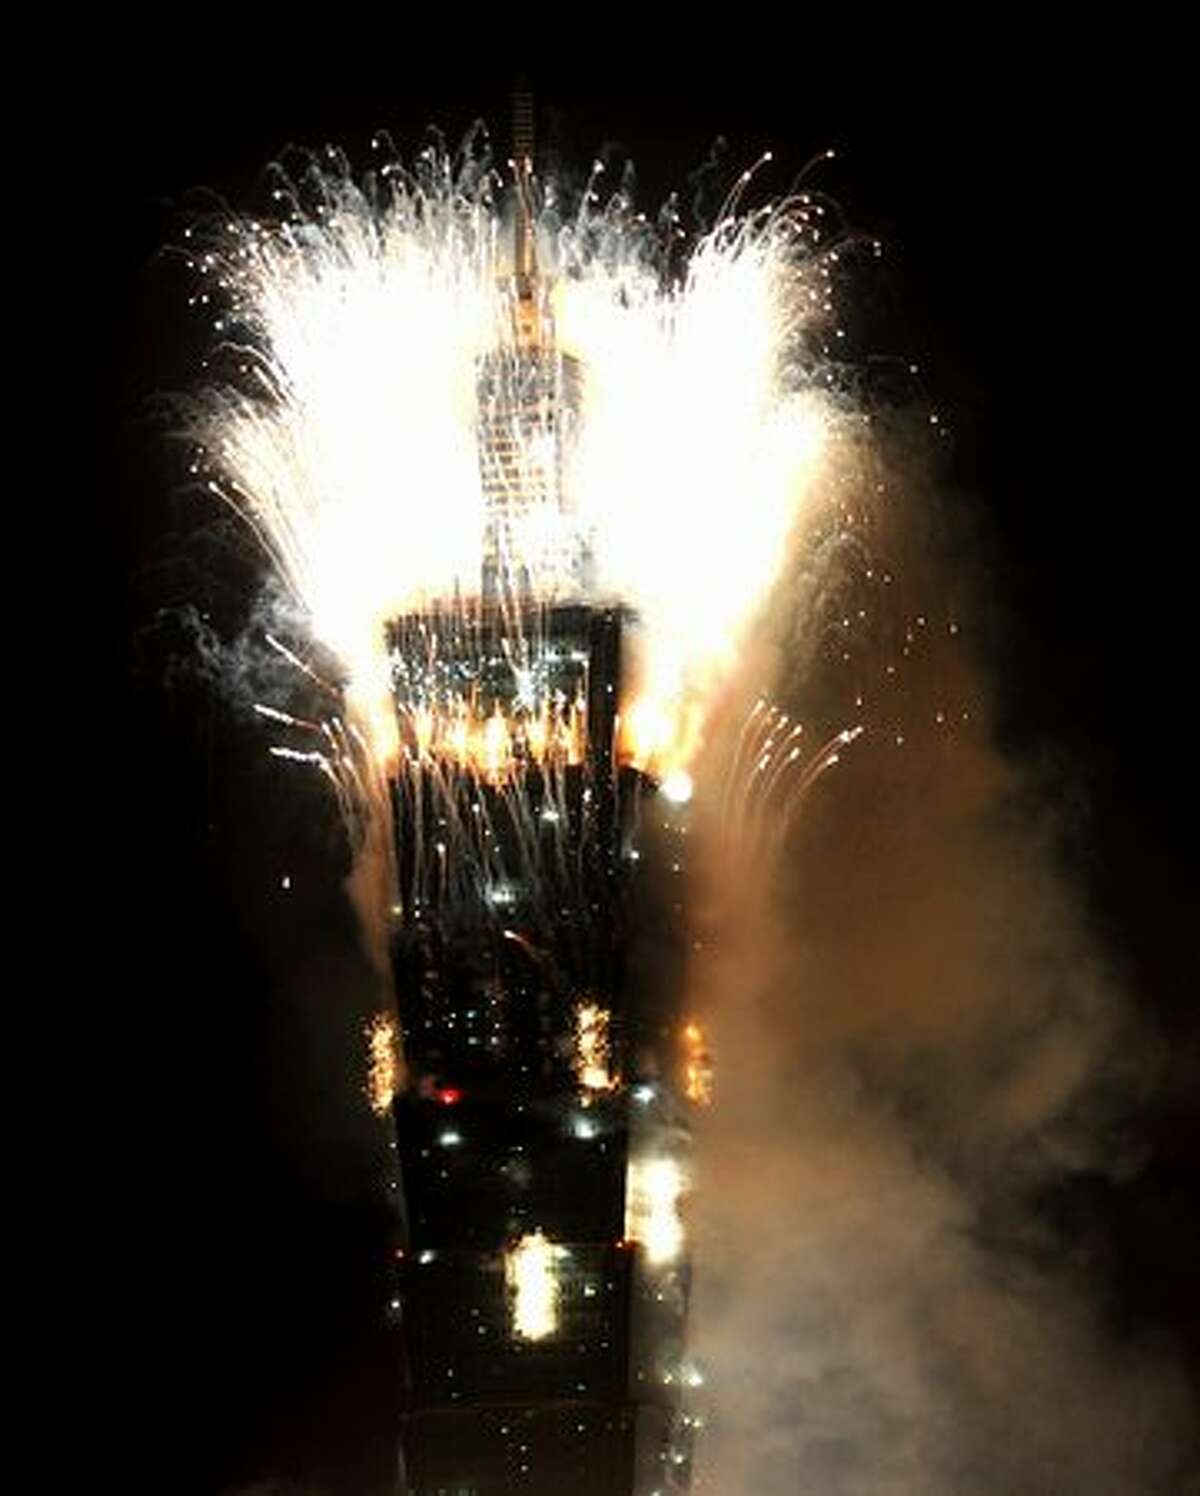 Fireworks are seen above Taiwan's tallest building, Taipei 101, on January 1, 2011 marking the New Year.